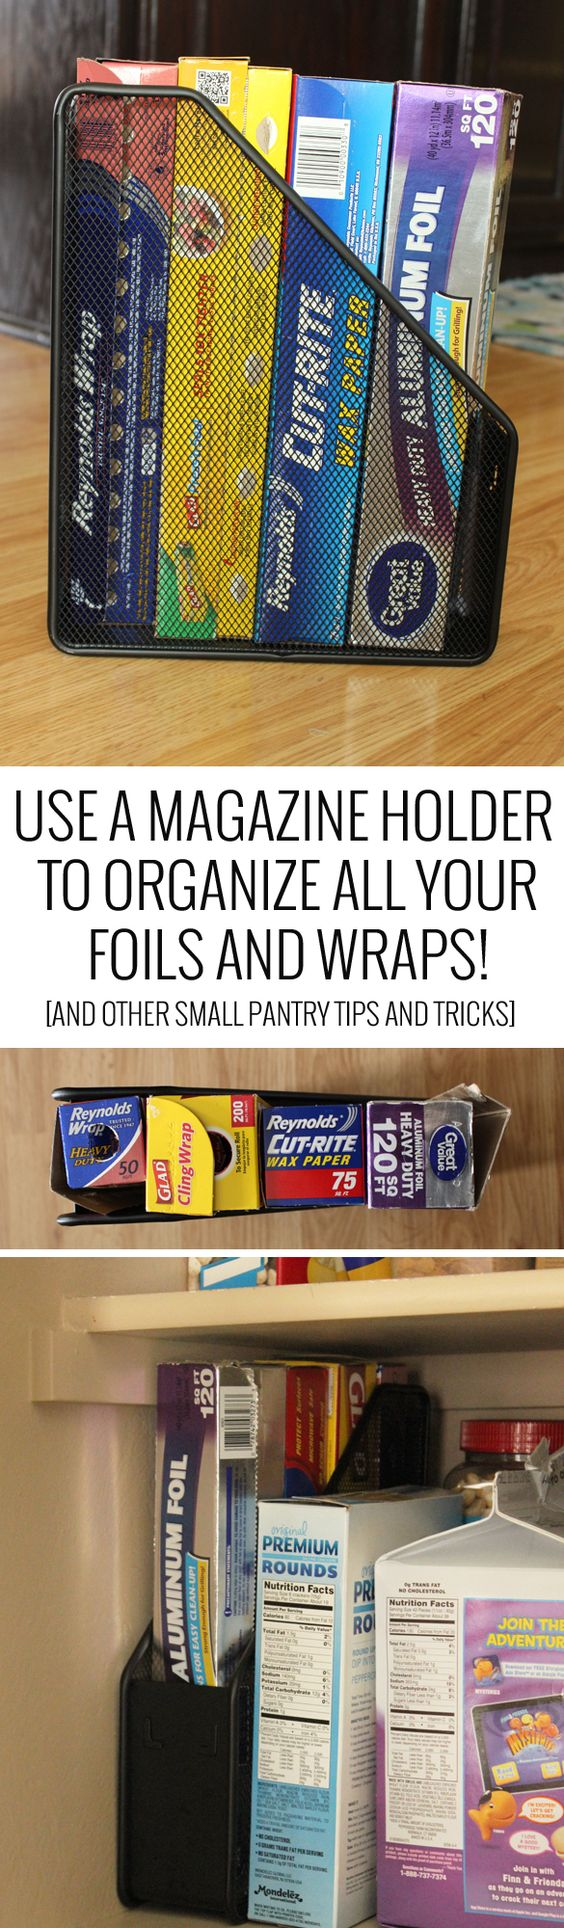 Use a magazine holder to organize all your foils and wraps! (And other awesome small pantry tips and tricks!)